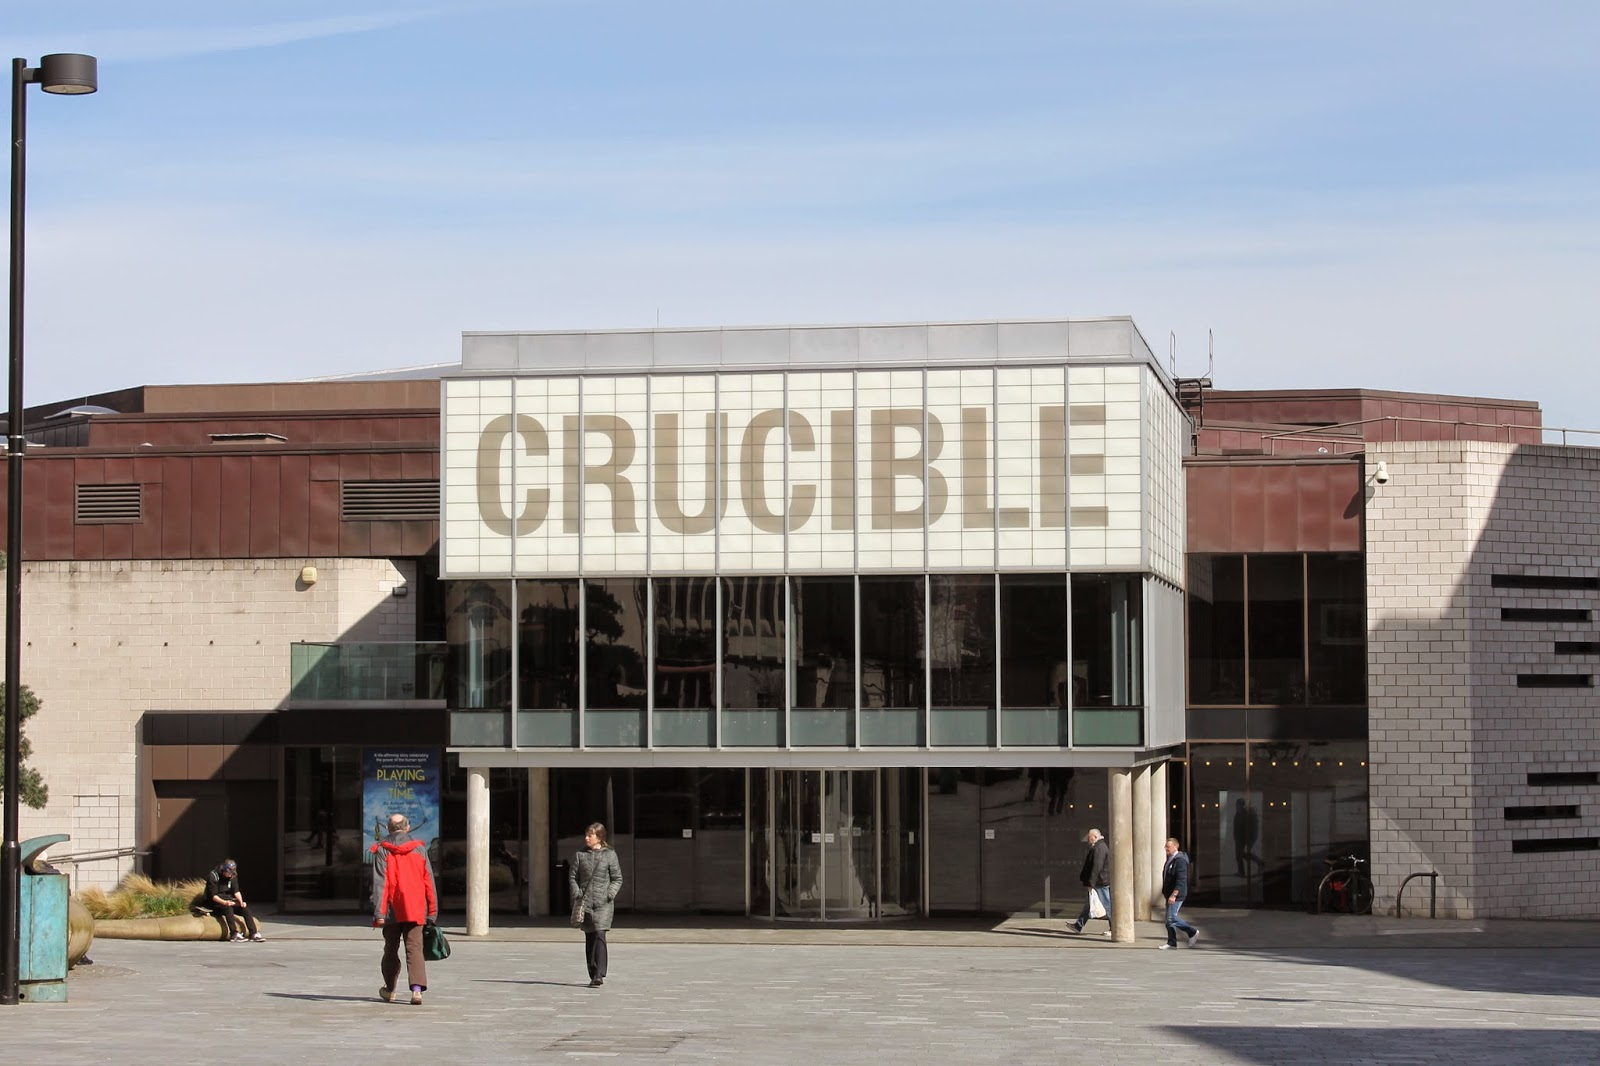 The Crucible Sheffield